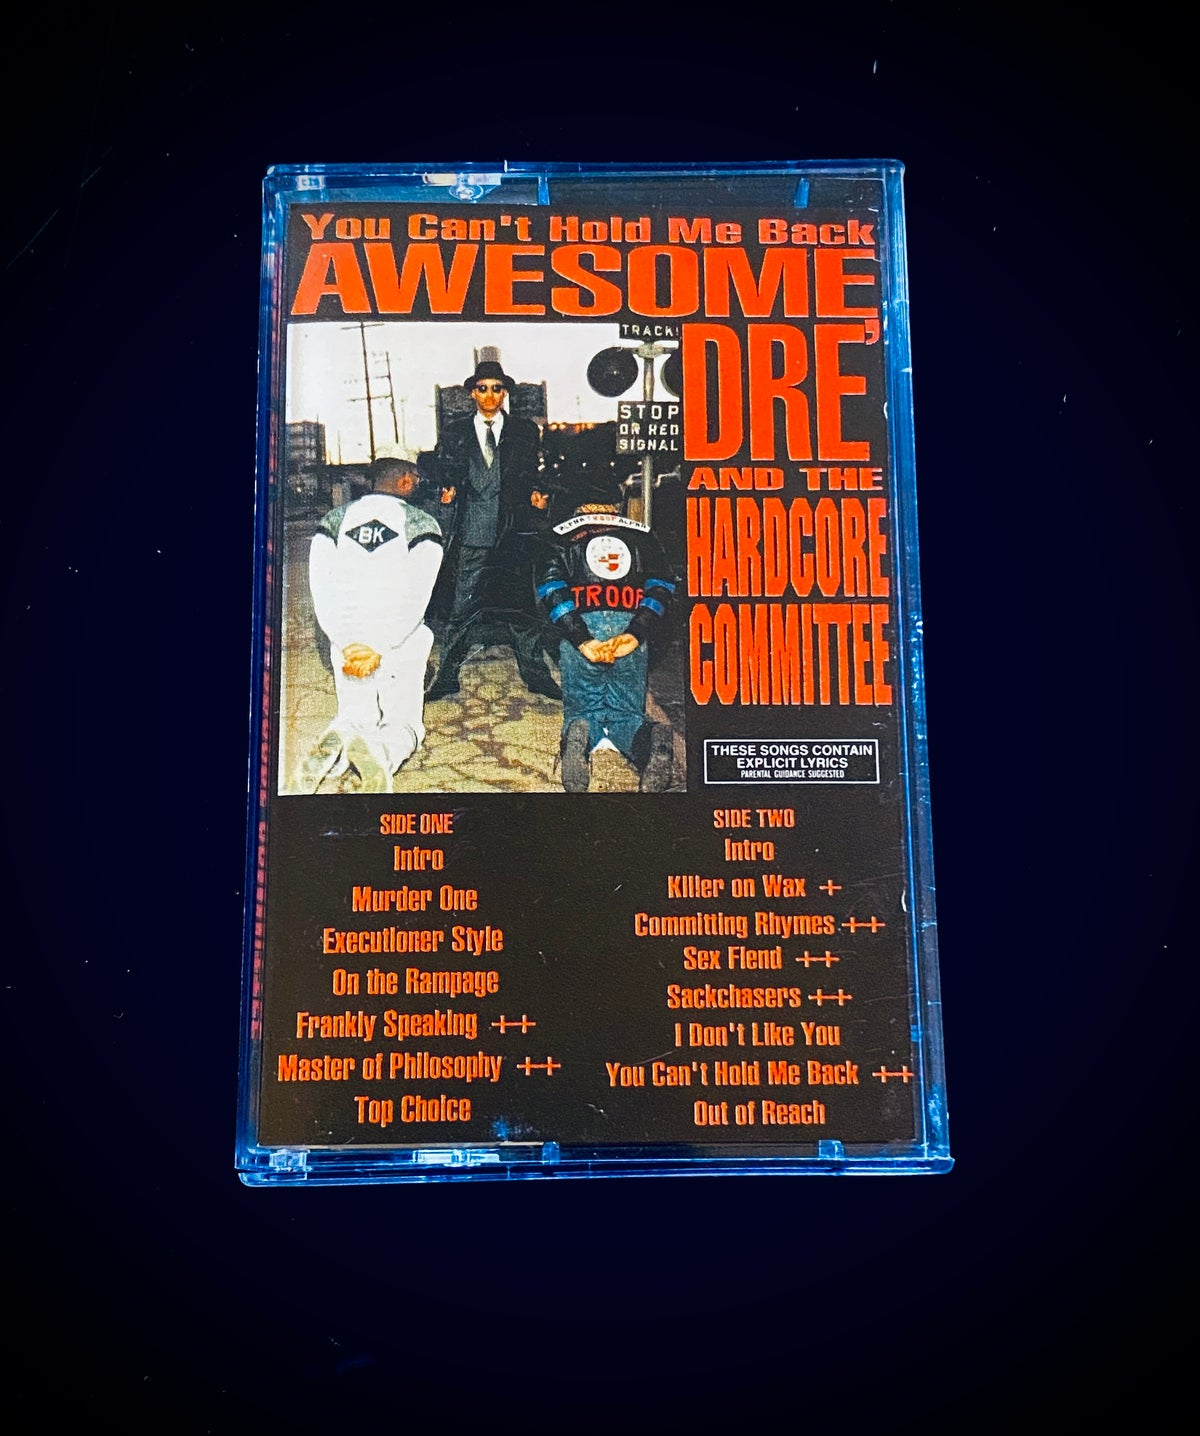 """Image of Awesome Dre and the Harcore committee """"You Can't…�"""